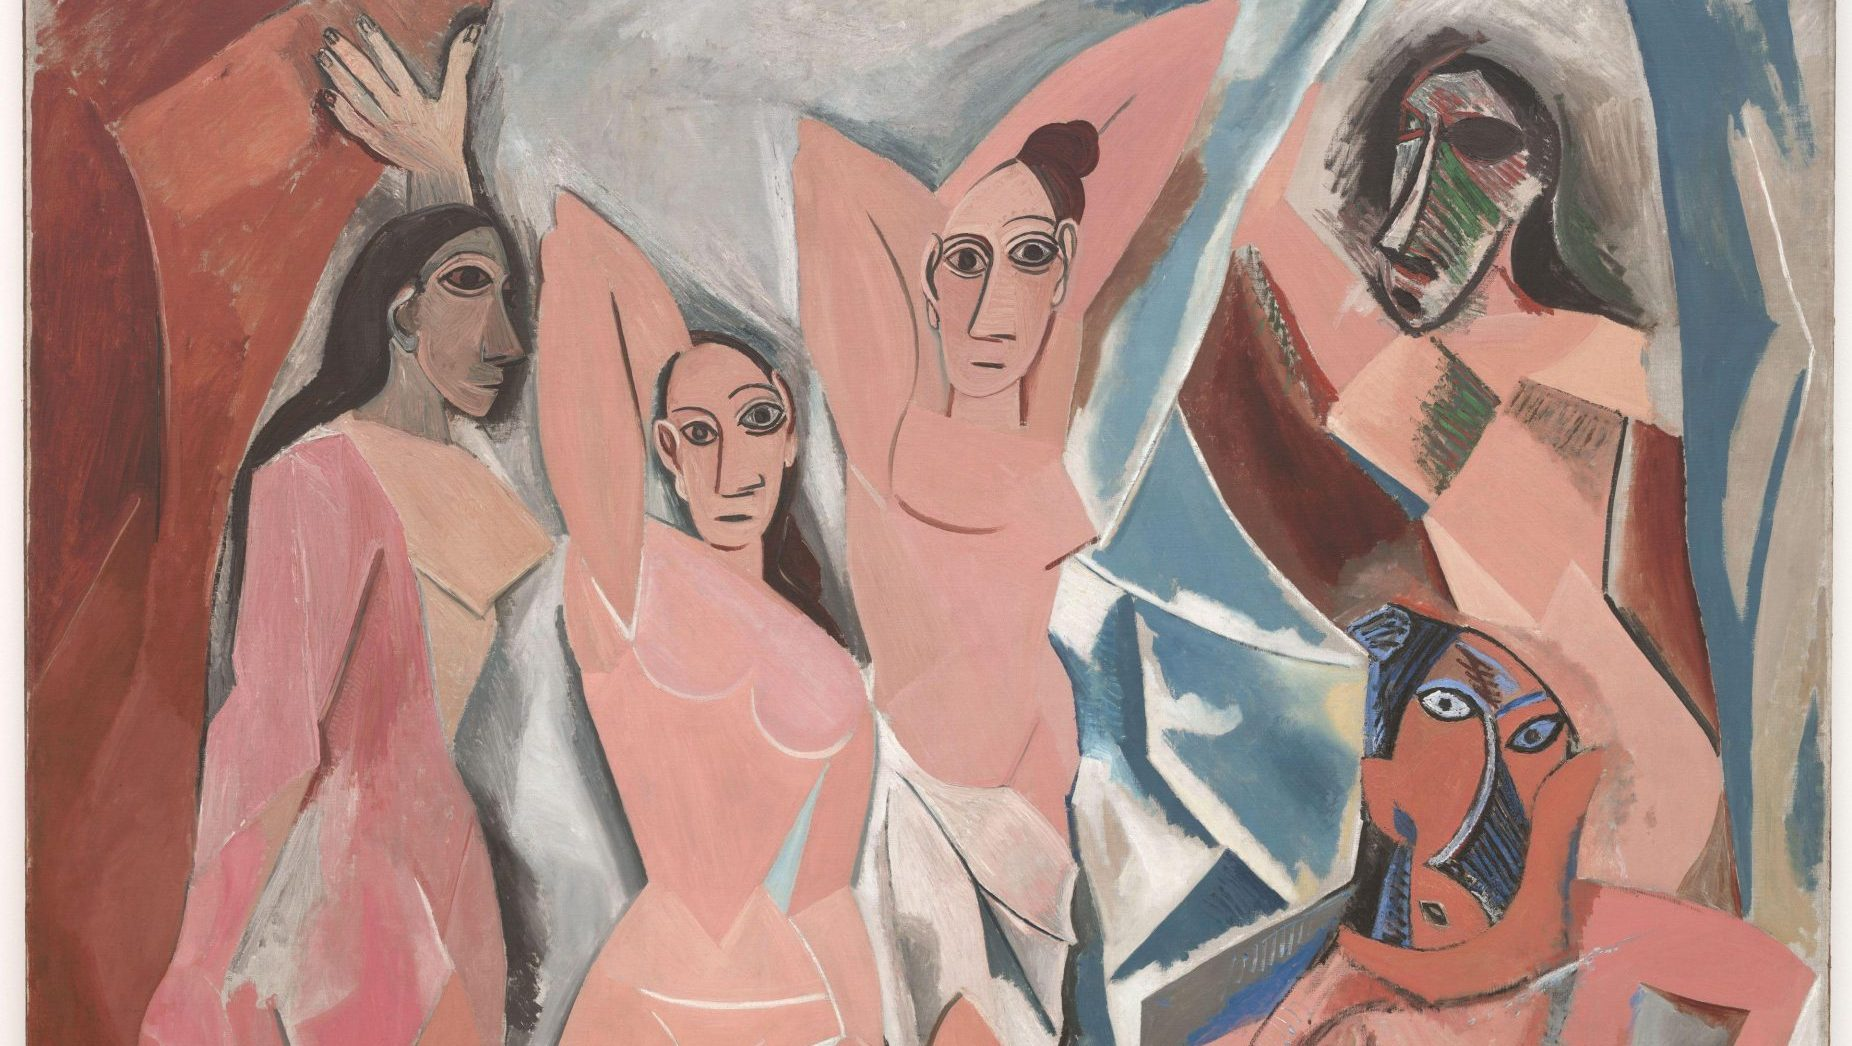 Picasso's Les Demoiselles d'Avignon, 1907. Inset, Woman With Clasped Hands (study for Les Demoiselles d'Avignon), also 1907 and a primitive Iberian head of a man from Spain's National Archaeological Museum. Credit: MOMA, New York City/ Photos: Mathieu Rabeau/Ángel Martínez Levas